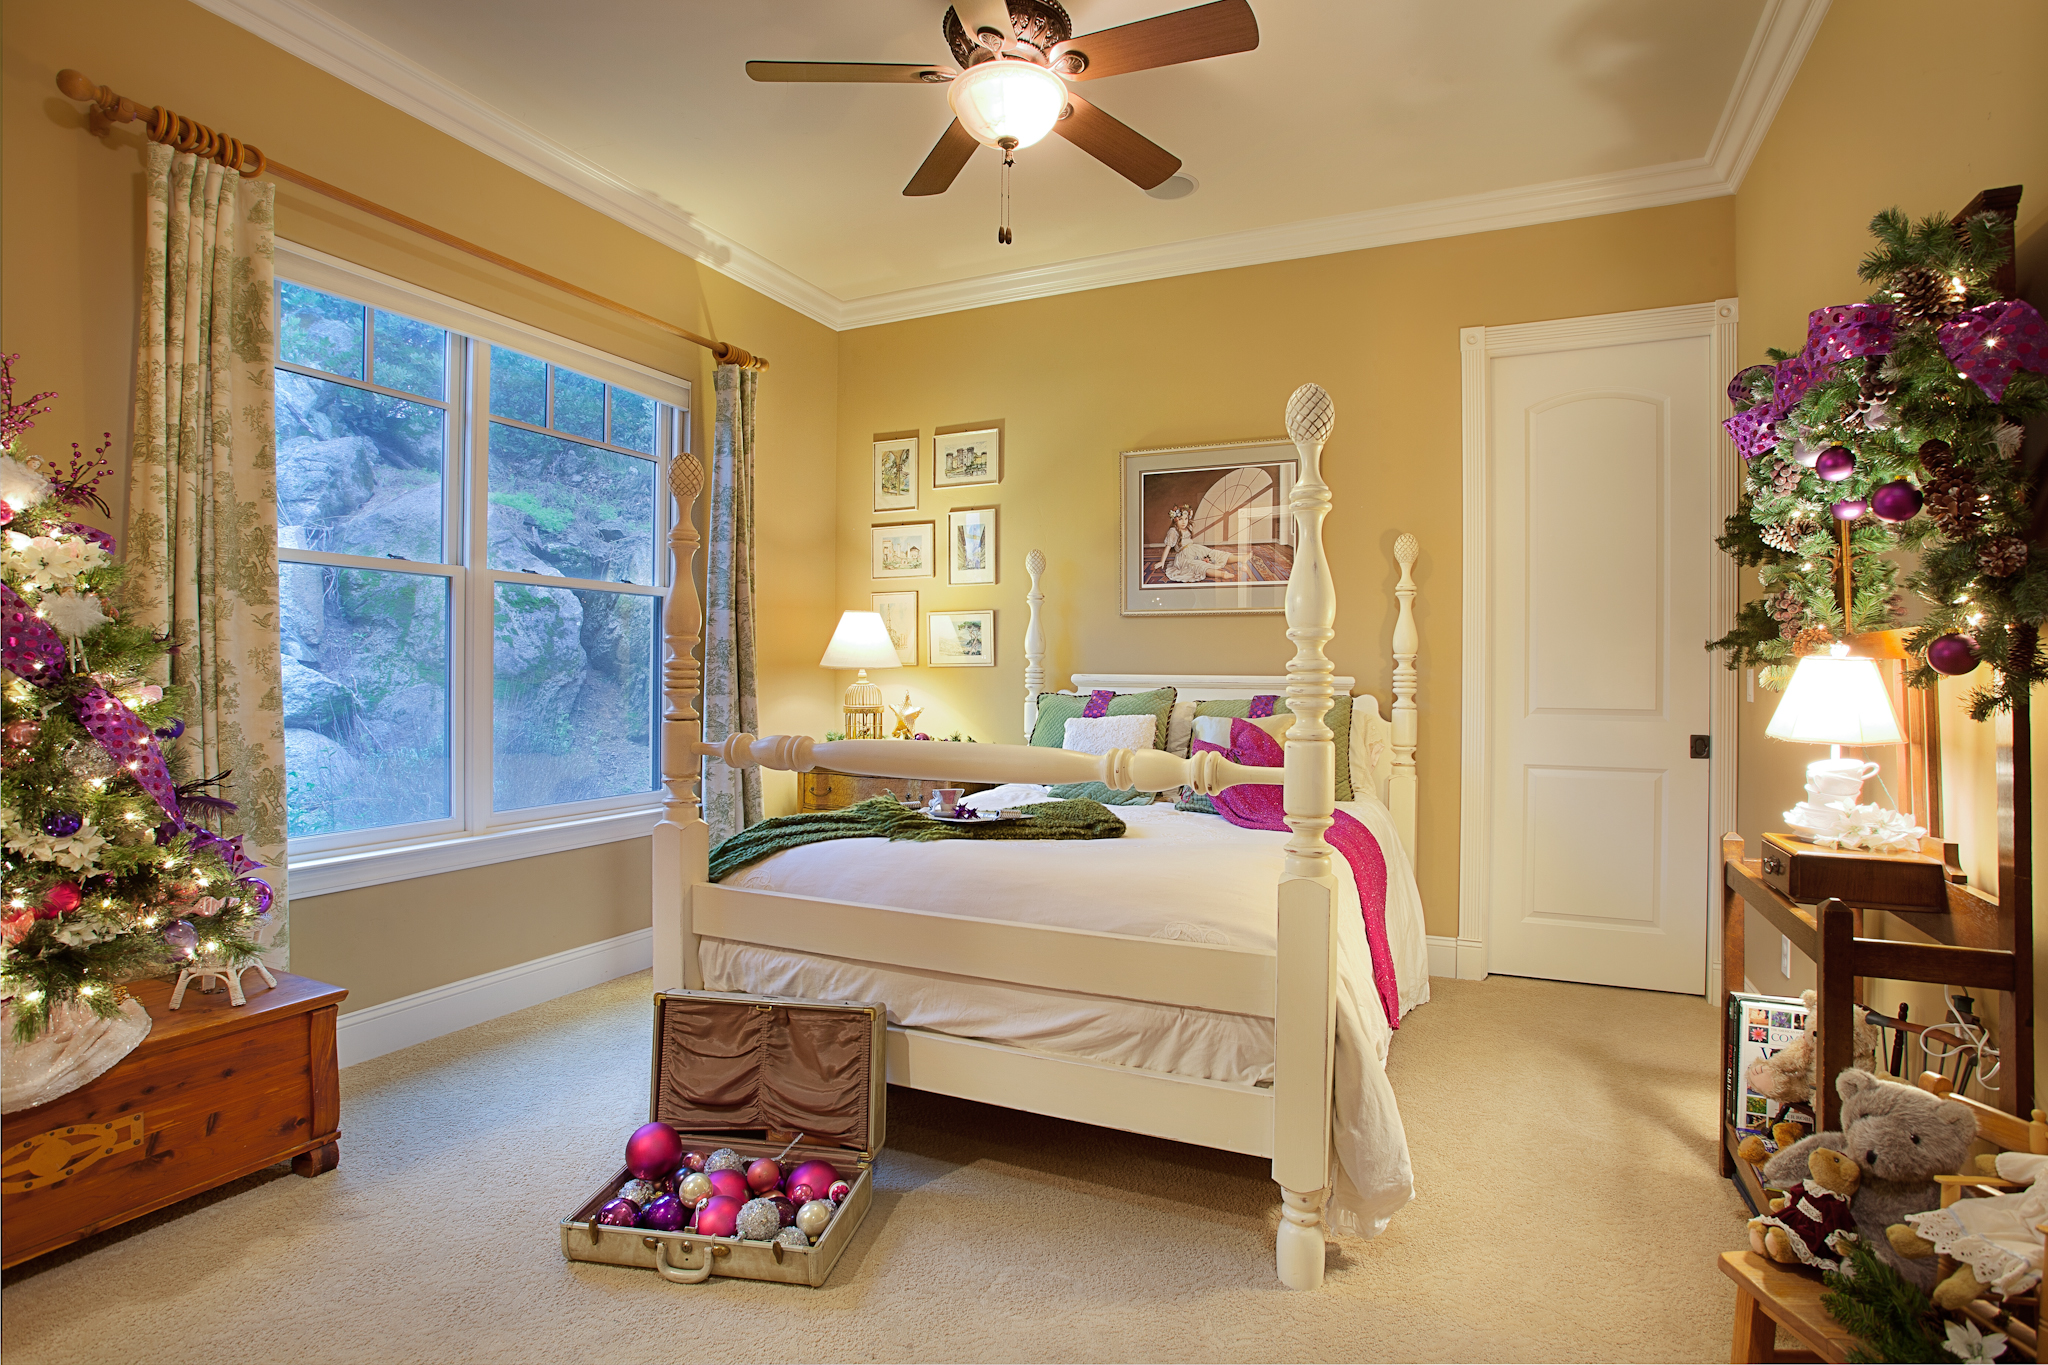 Bedroom After - Decorated for Christmas